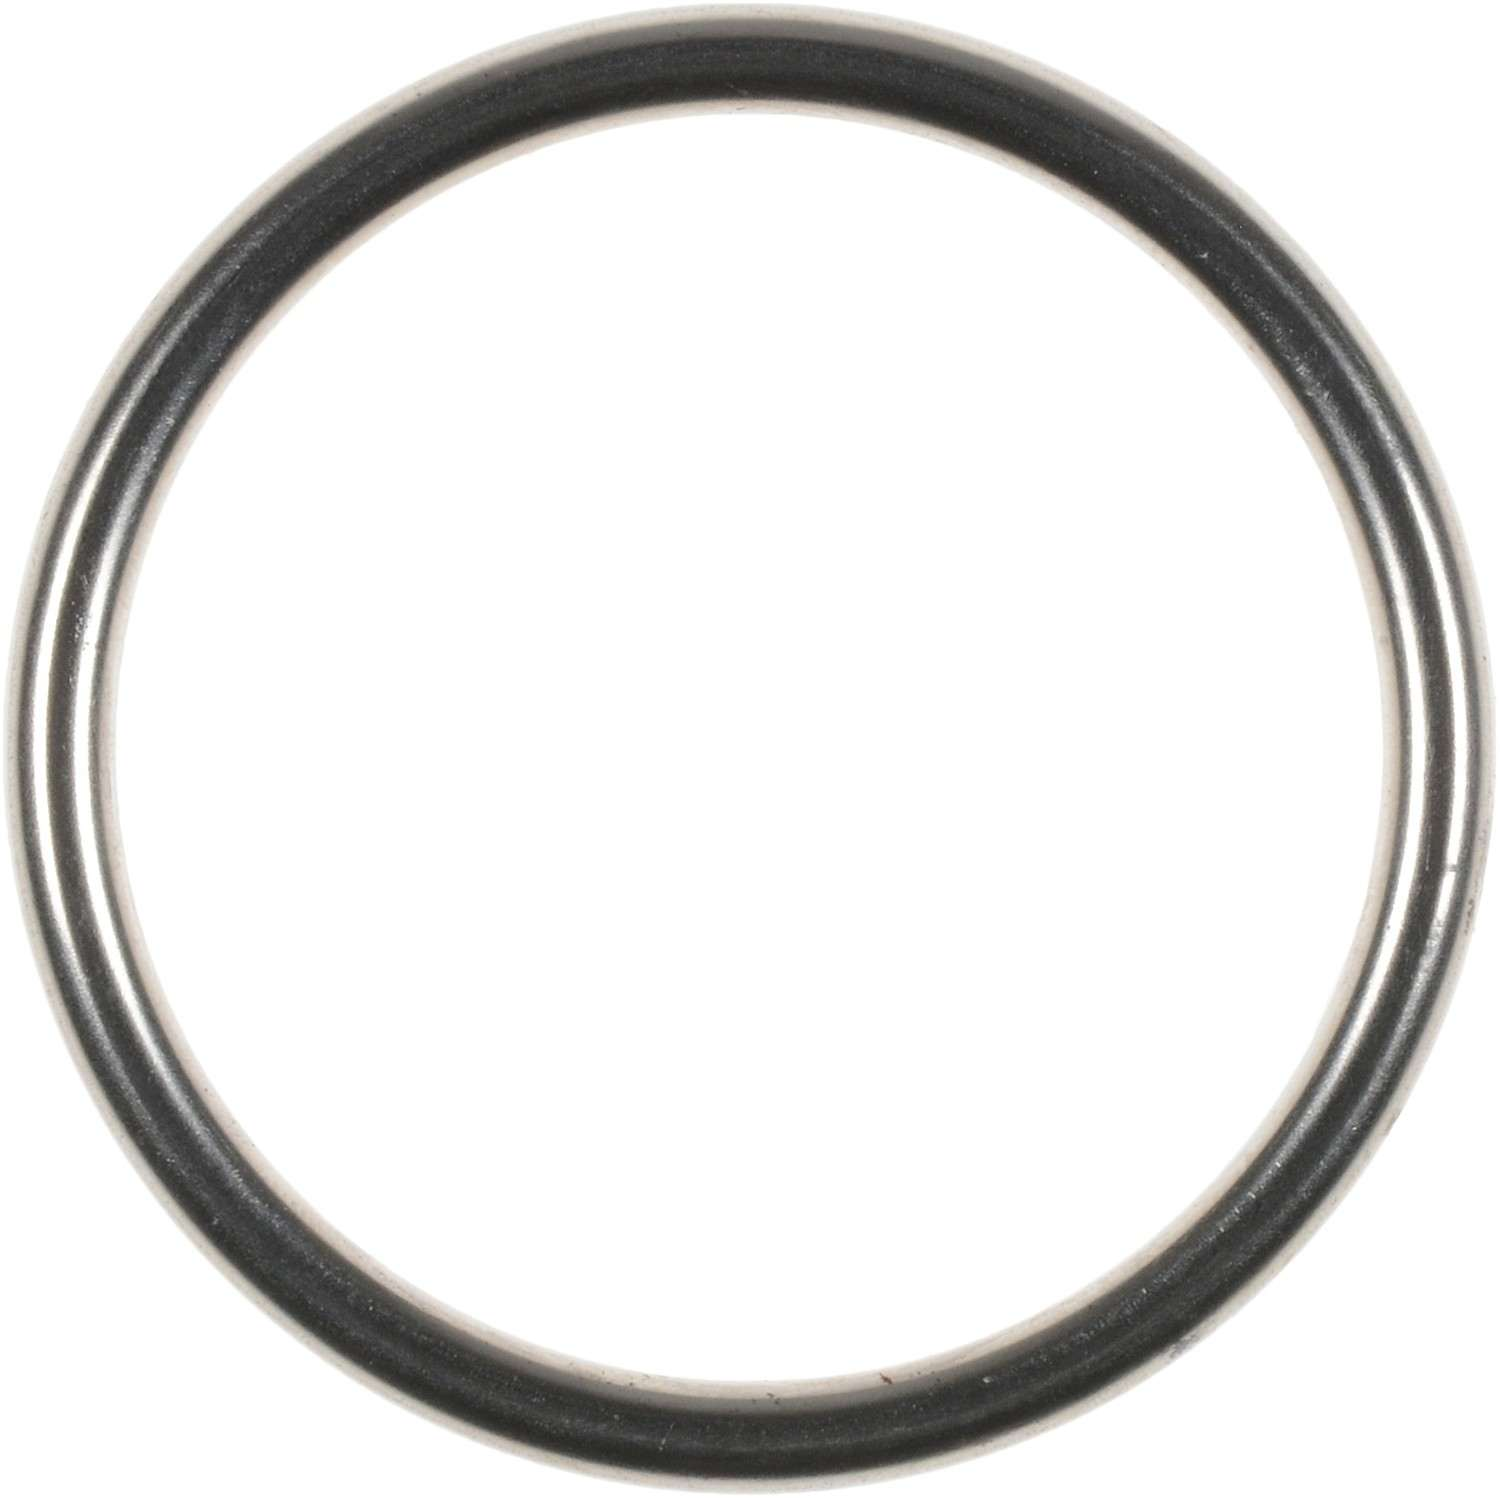 MAHLE ORIGINAL - Catalytic Converter Gasket - MHL F7281